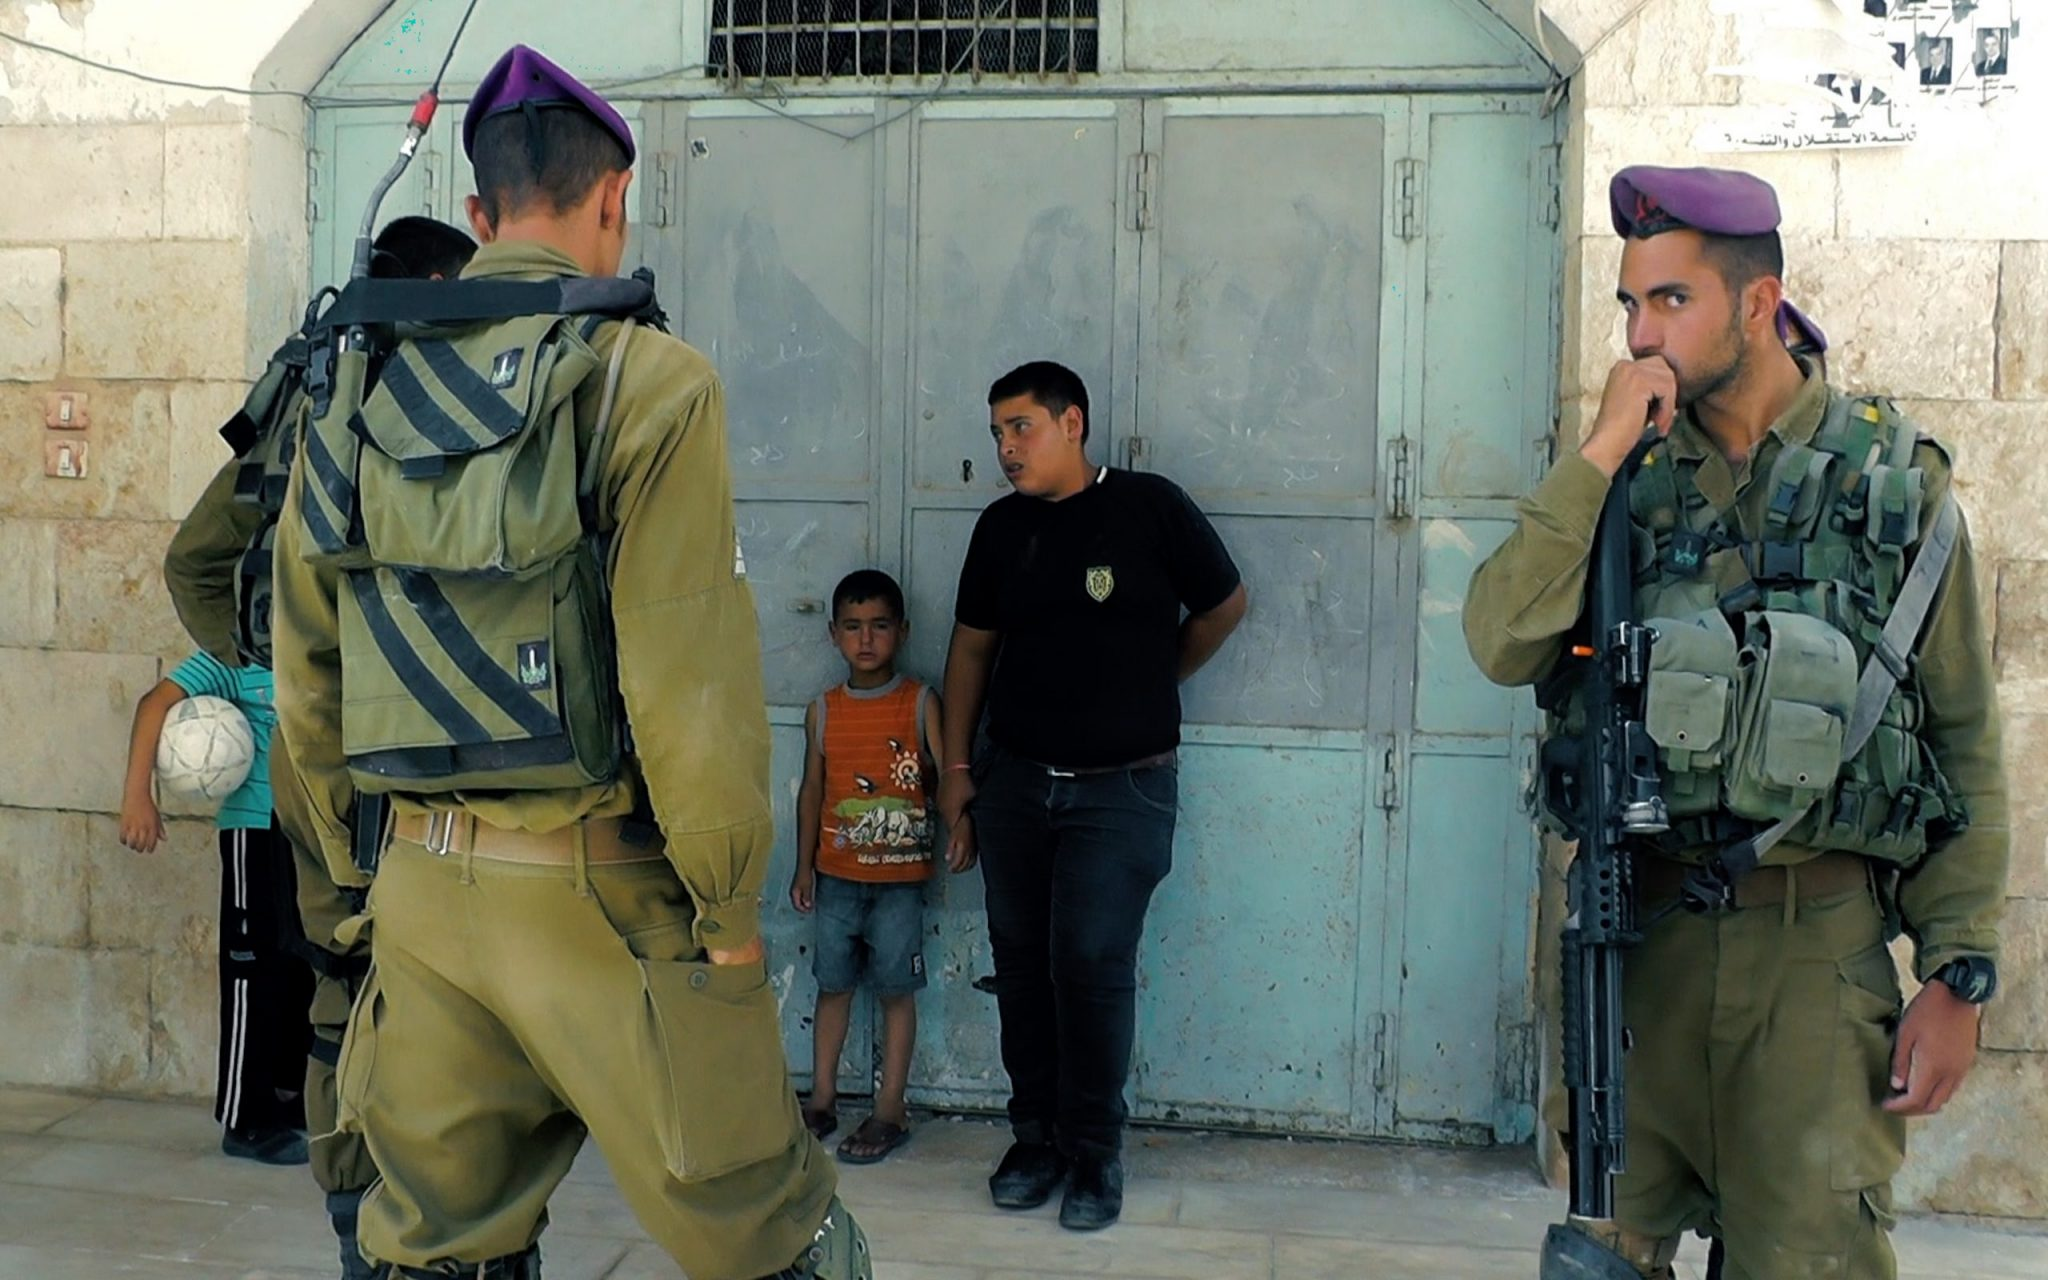 """A still from """"Of Land and Bread"""". Three armed soldiers wearing purple berets surround three children. The children have anxious expressions and stand against a blue metal door."""